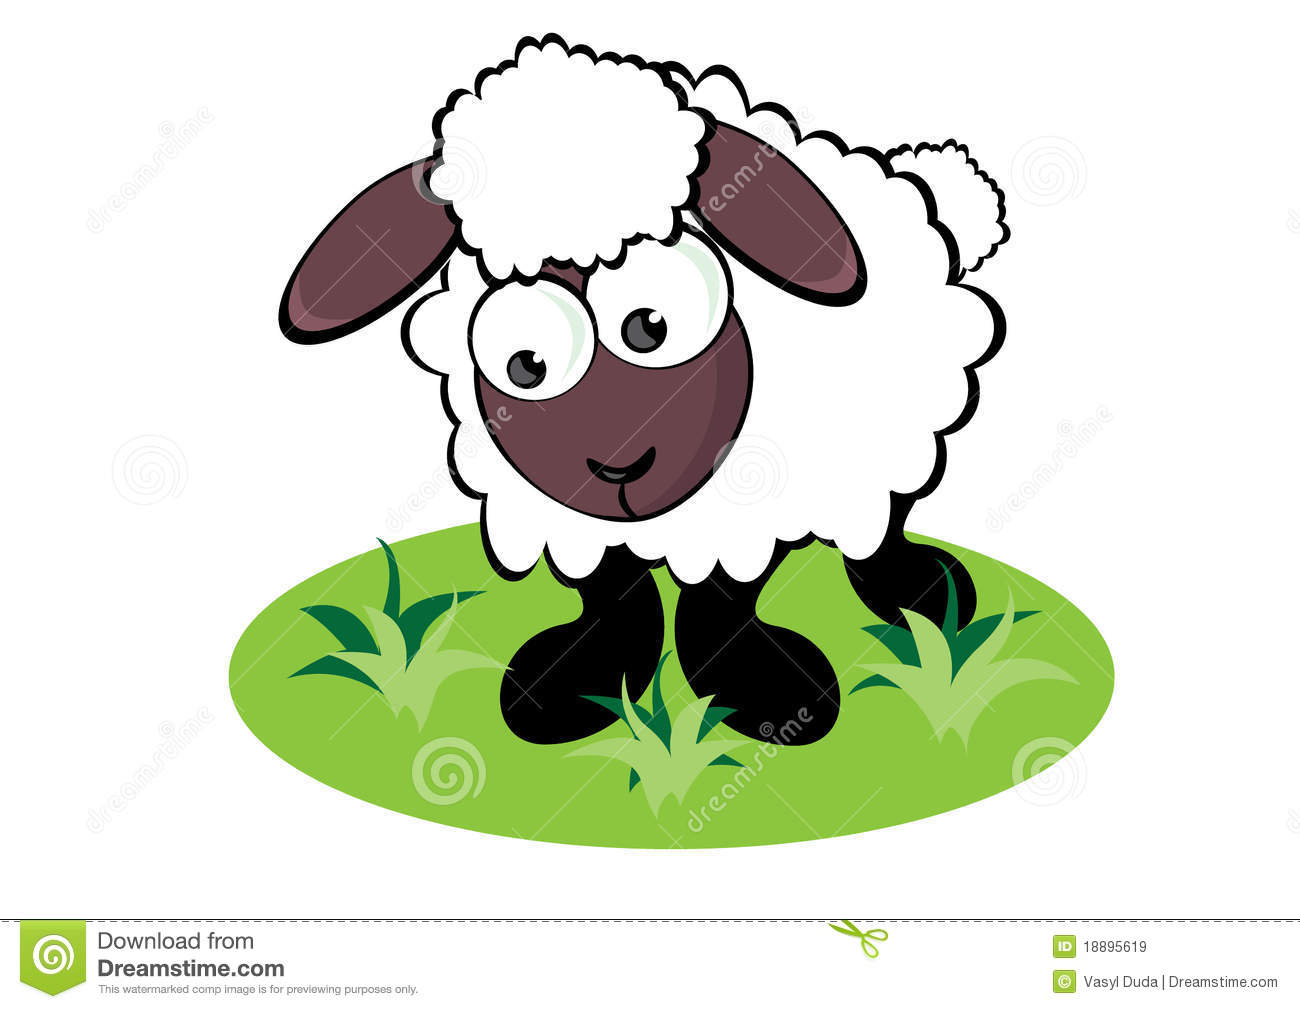 Cartoon sheep pictures - Dessin mouton ...